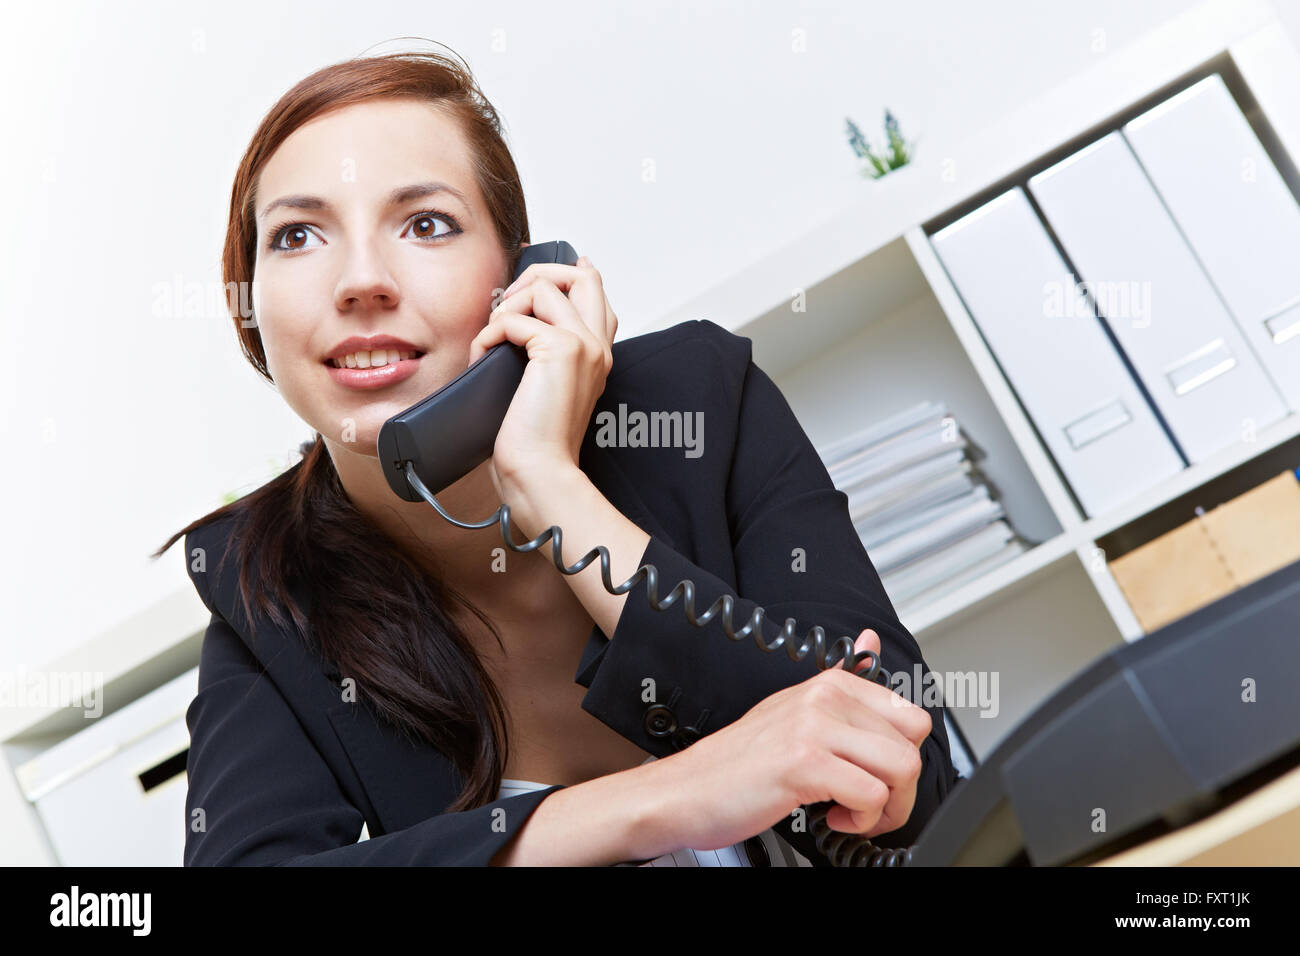 Smiling secretary using the phone in the office for a call - Stock Image